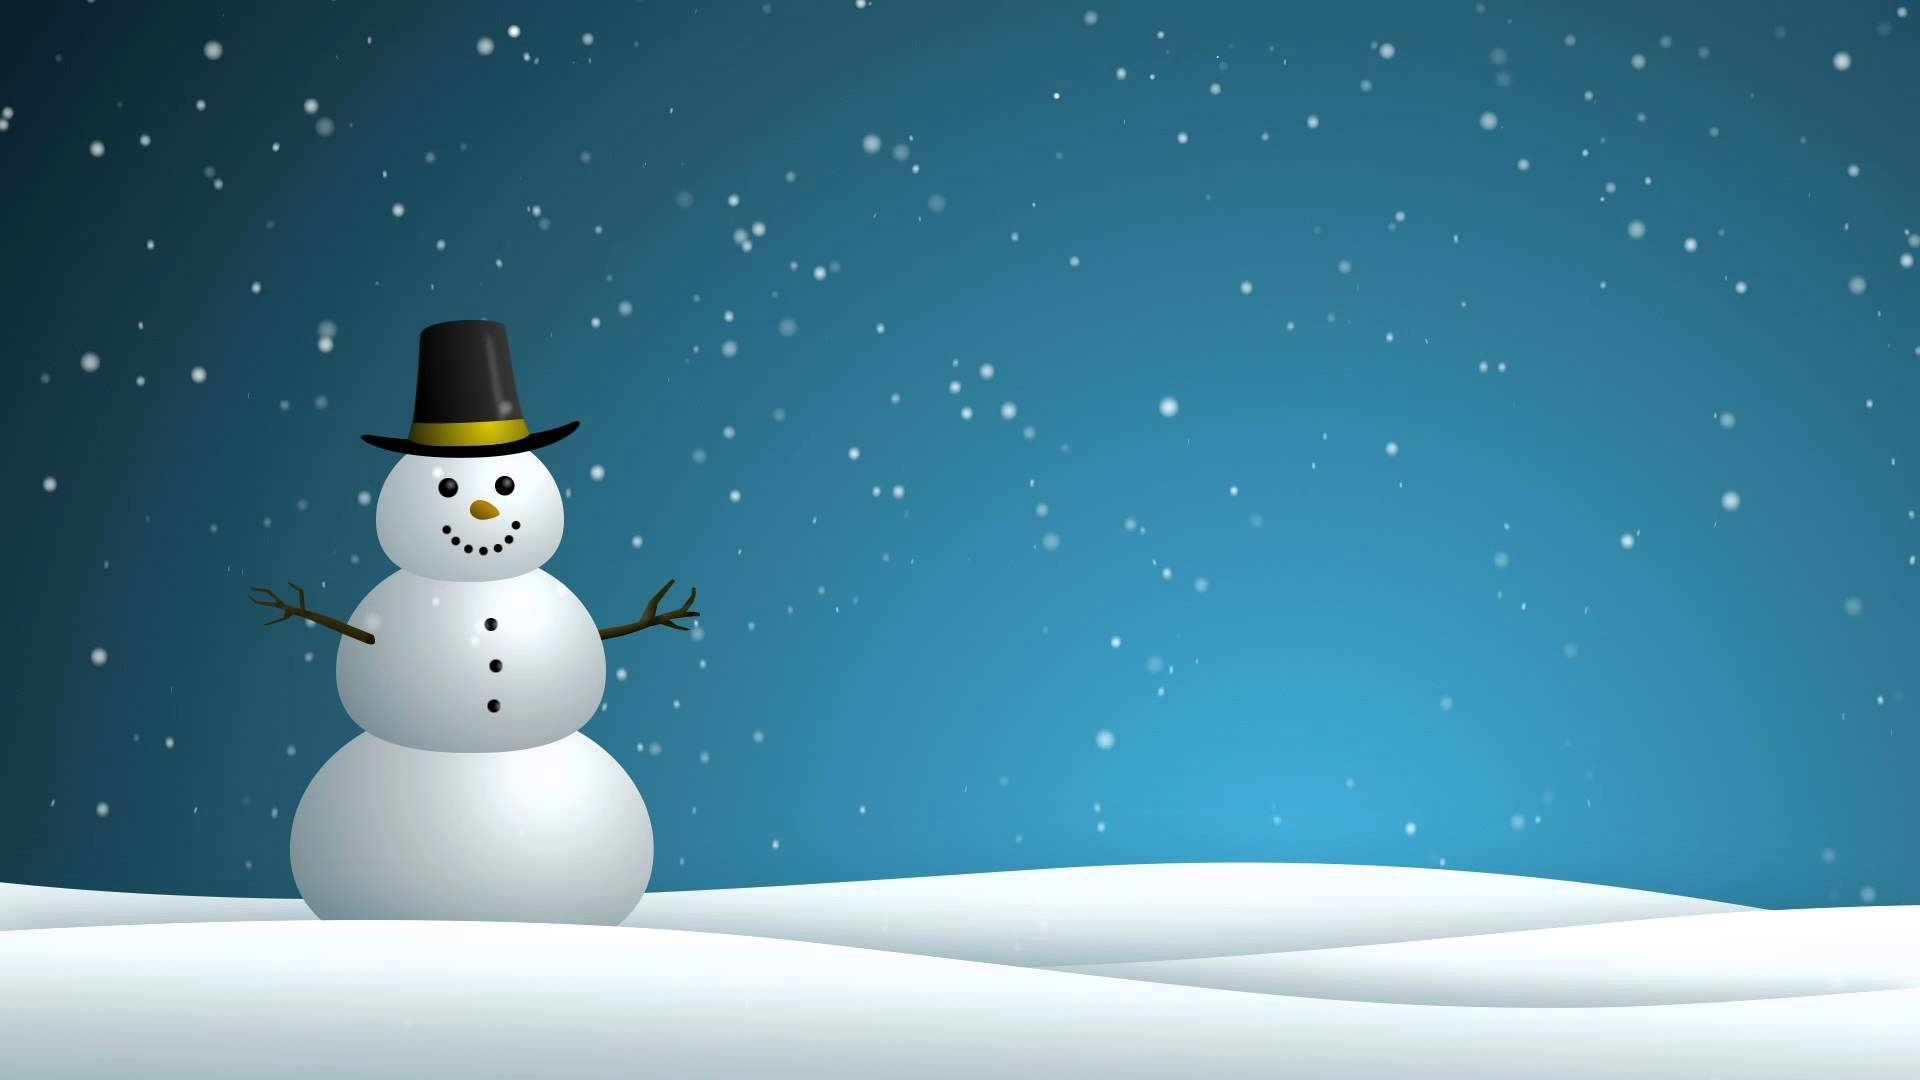 snowman - hd background loop - youtube